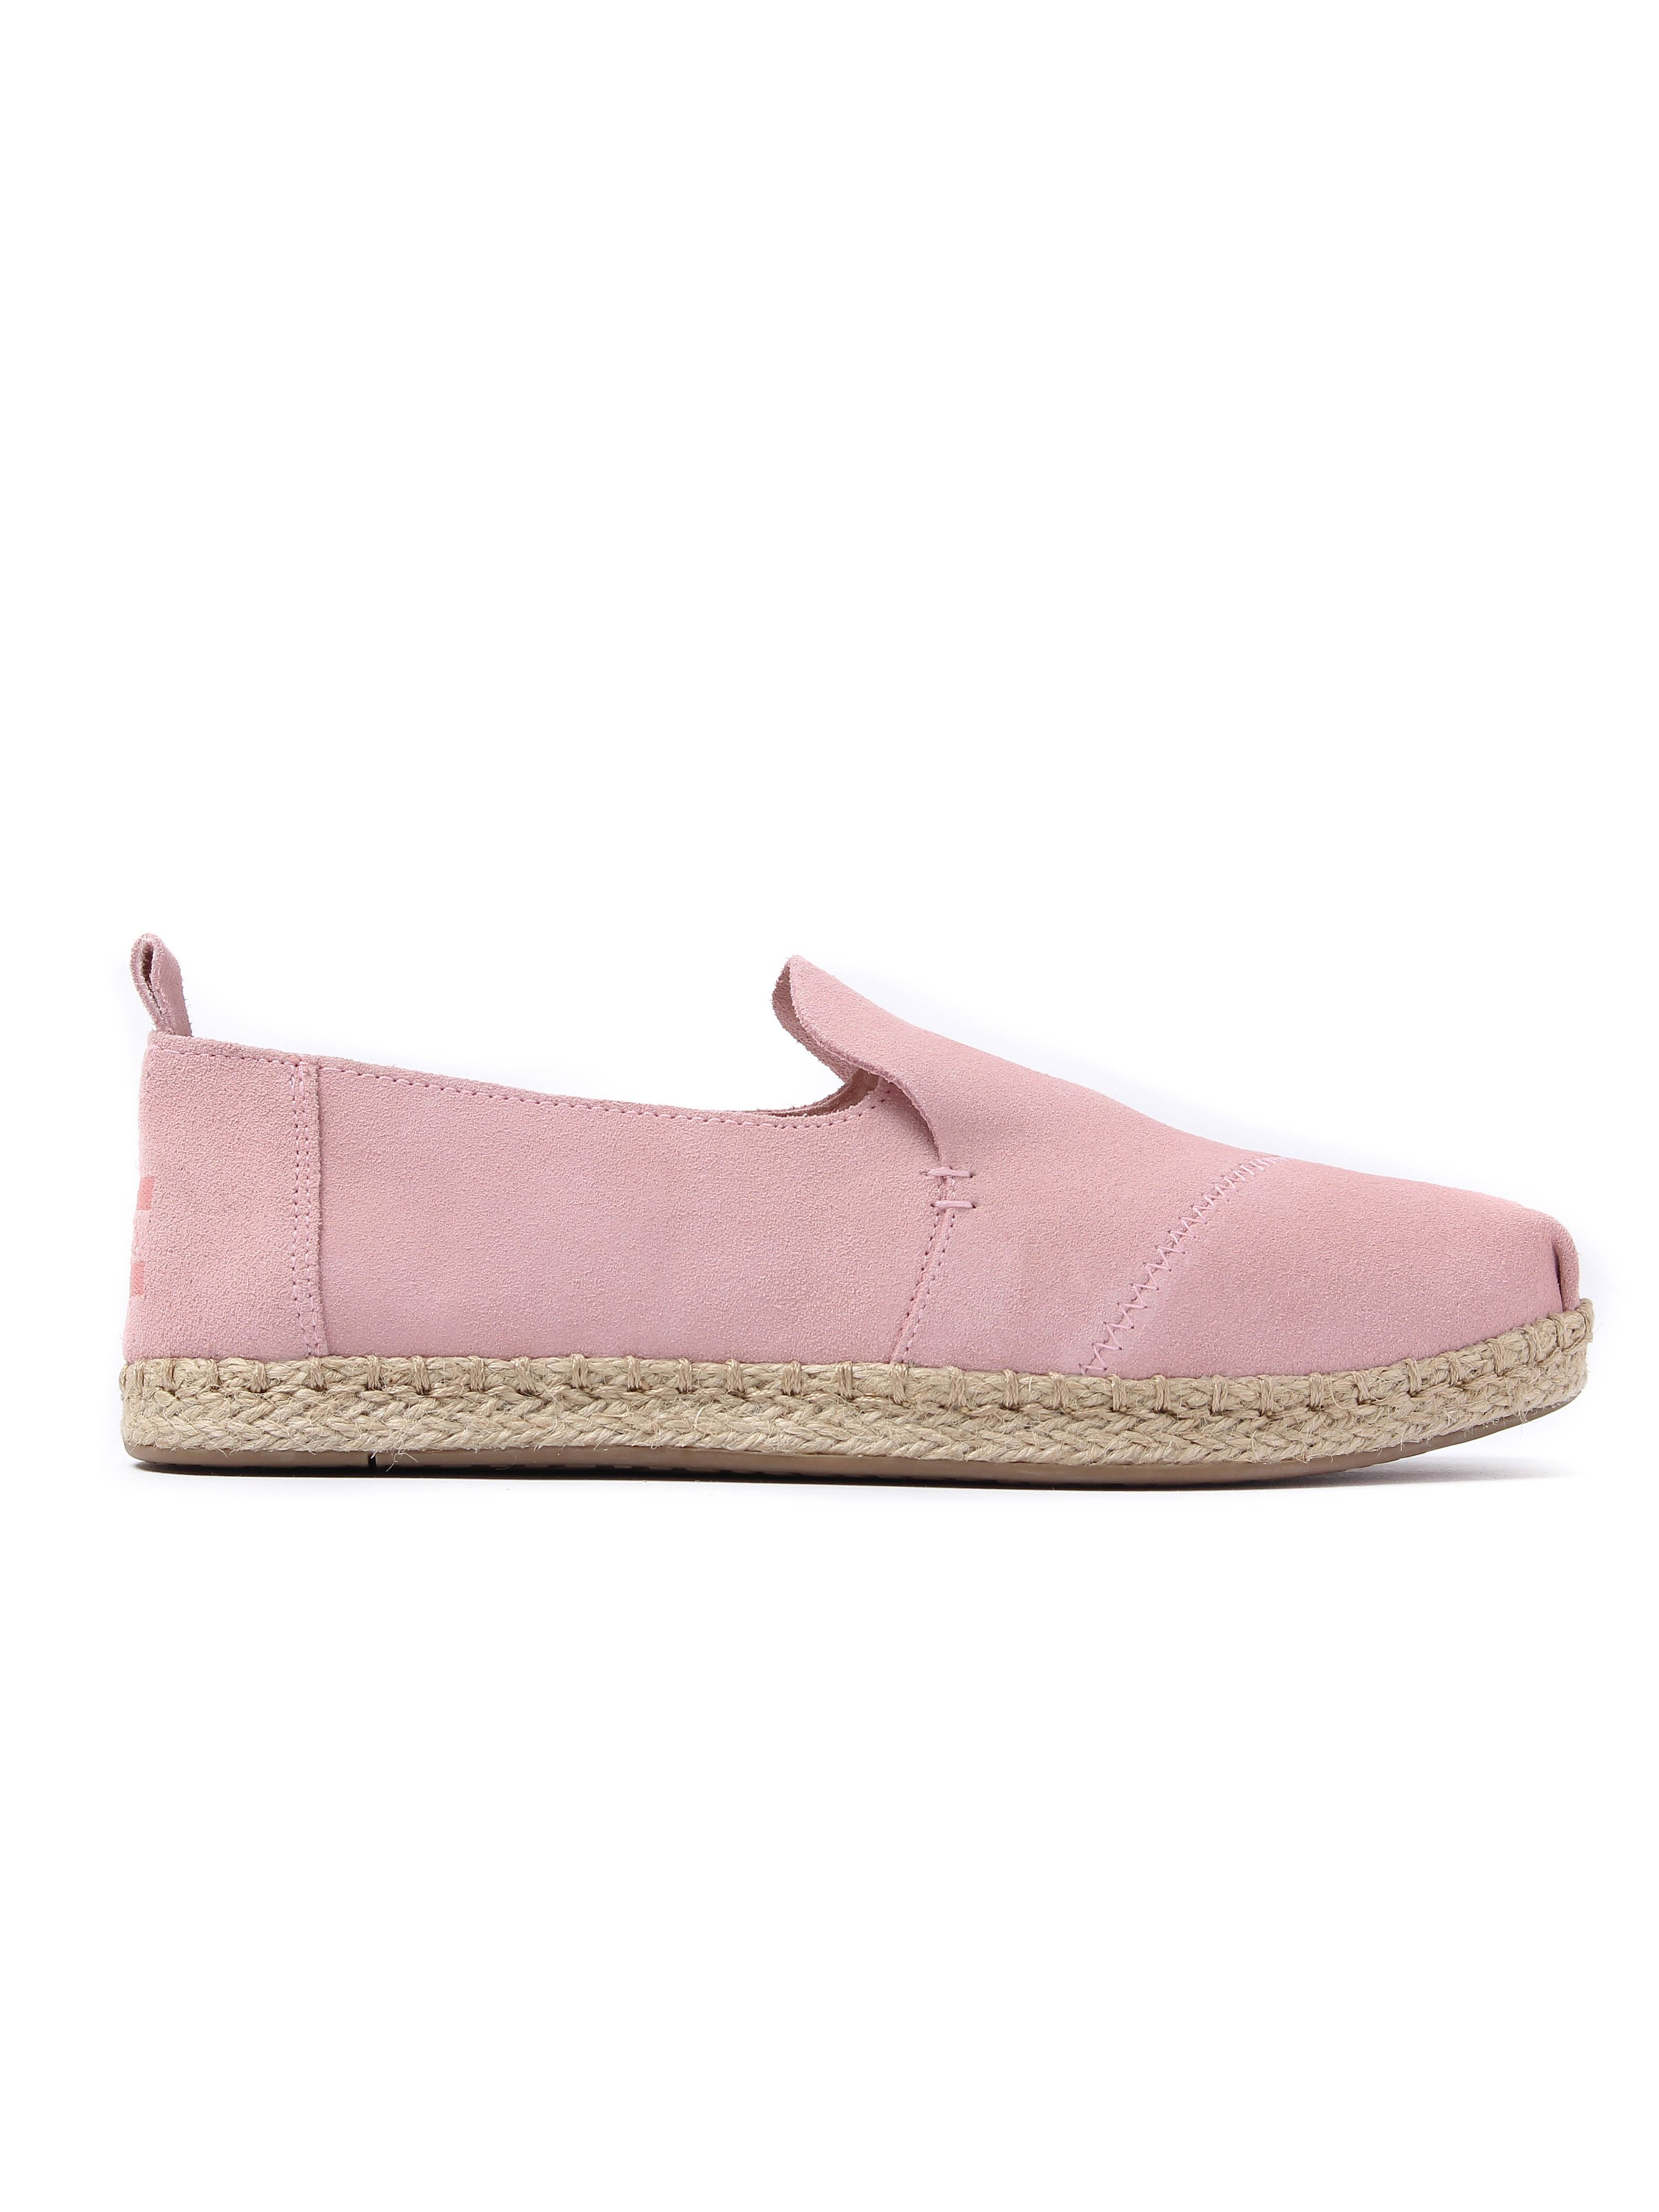 Toms Women's Deconstructed Alpargata Suede Slip On Espadrilles - Pale Pink